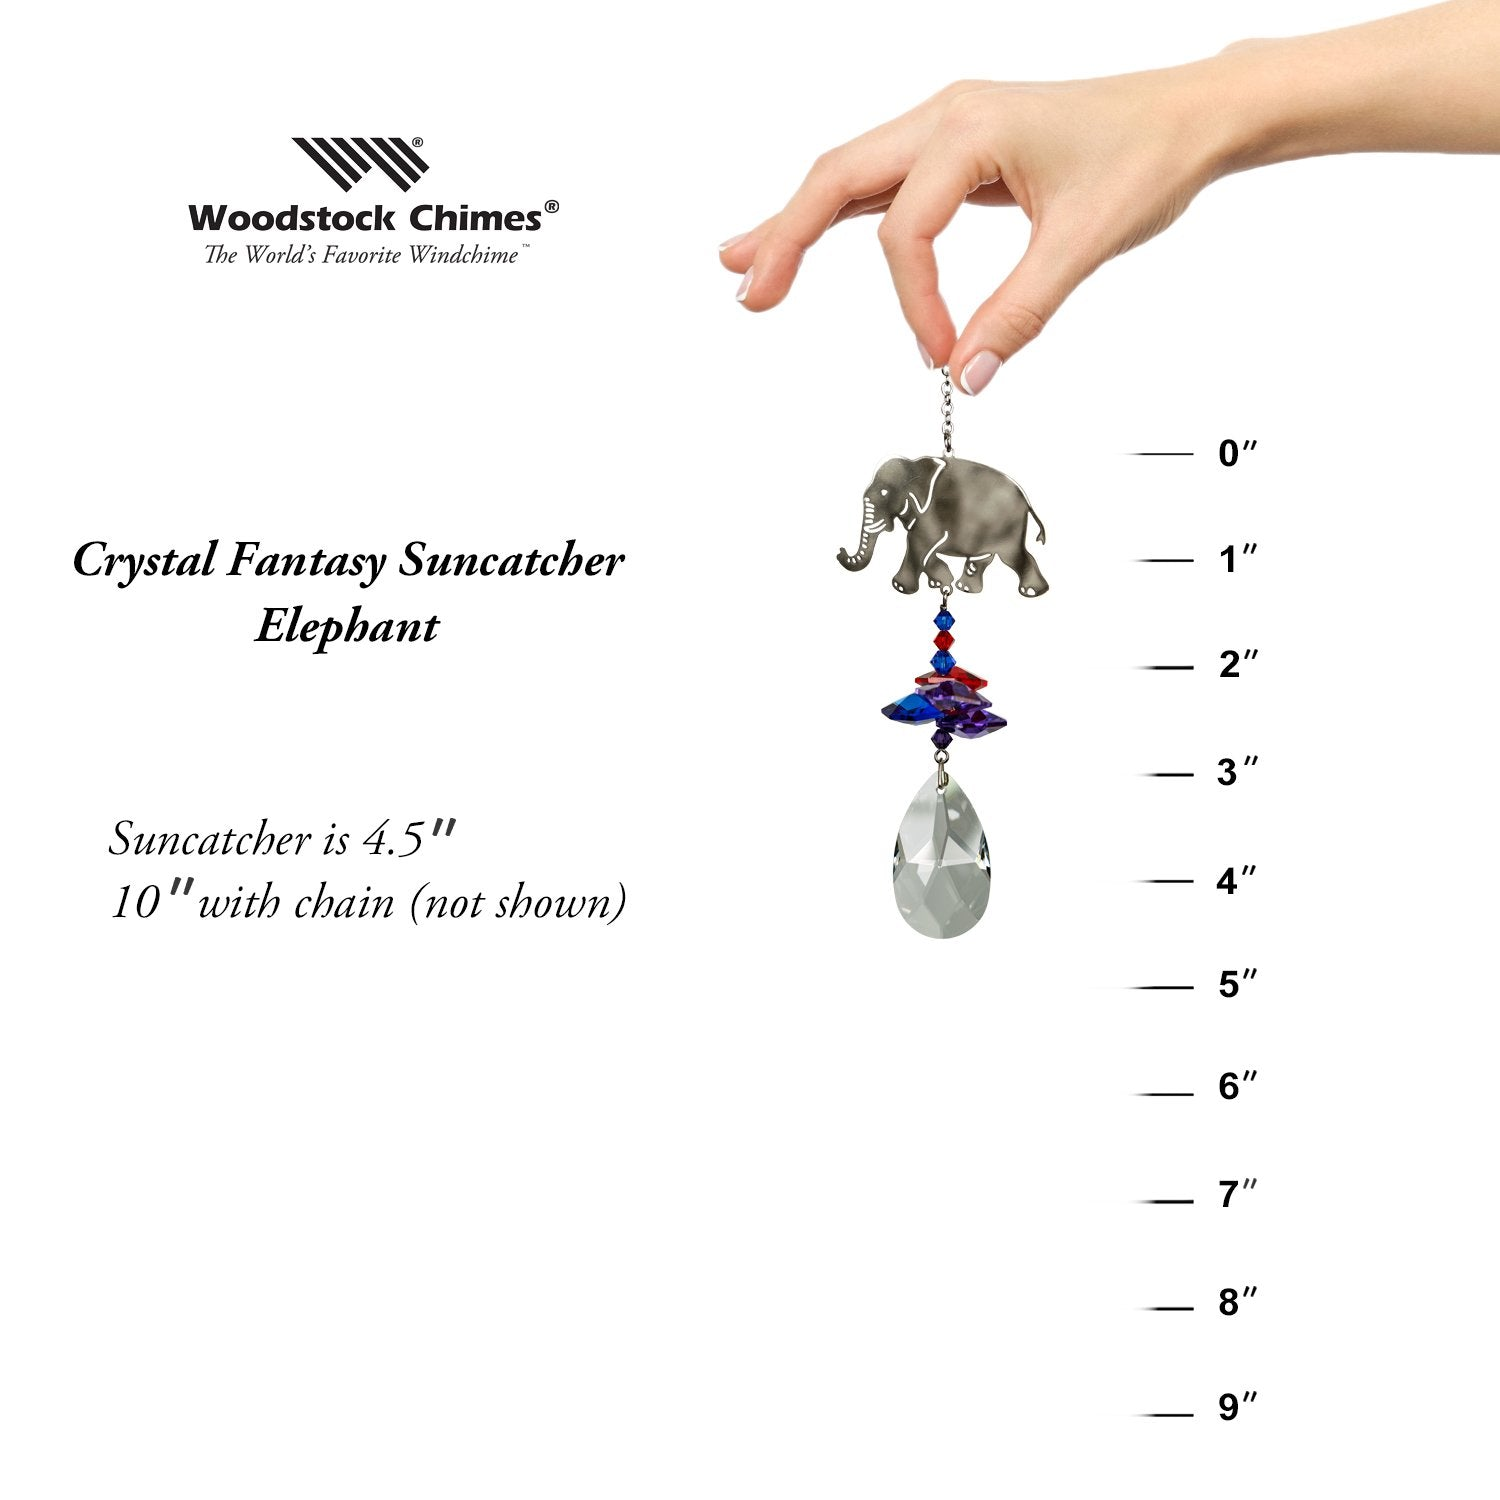 Crystal Fantasy Suncatcher - Elephant proportion image